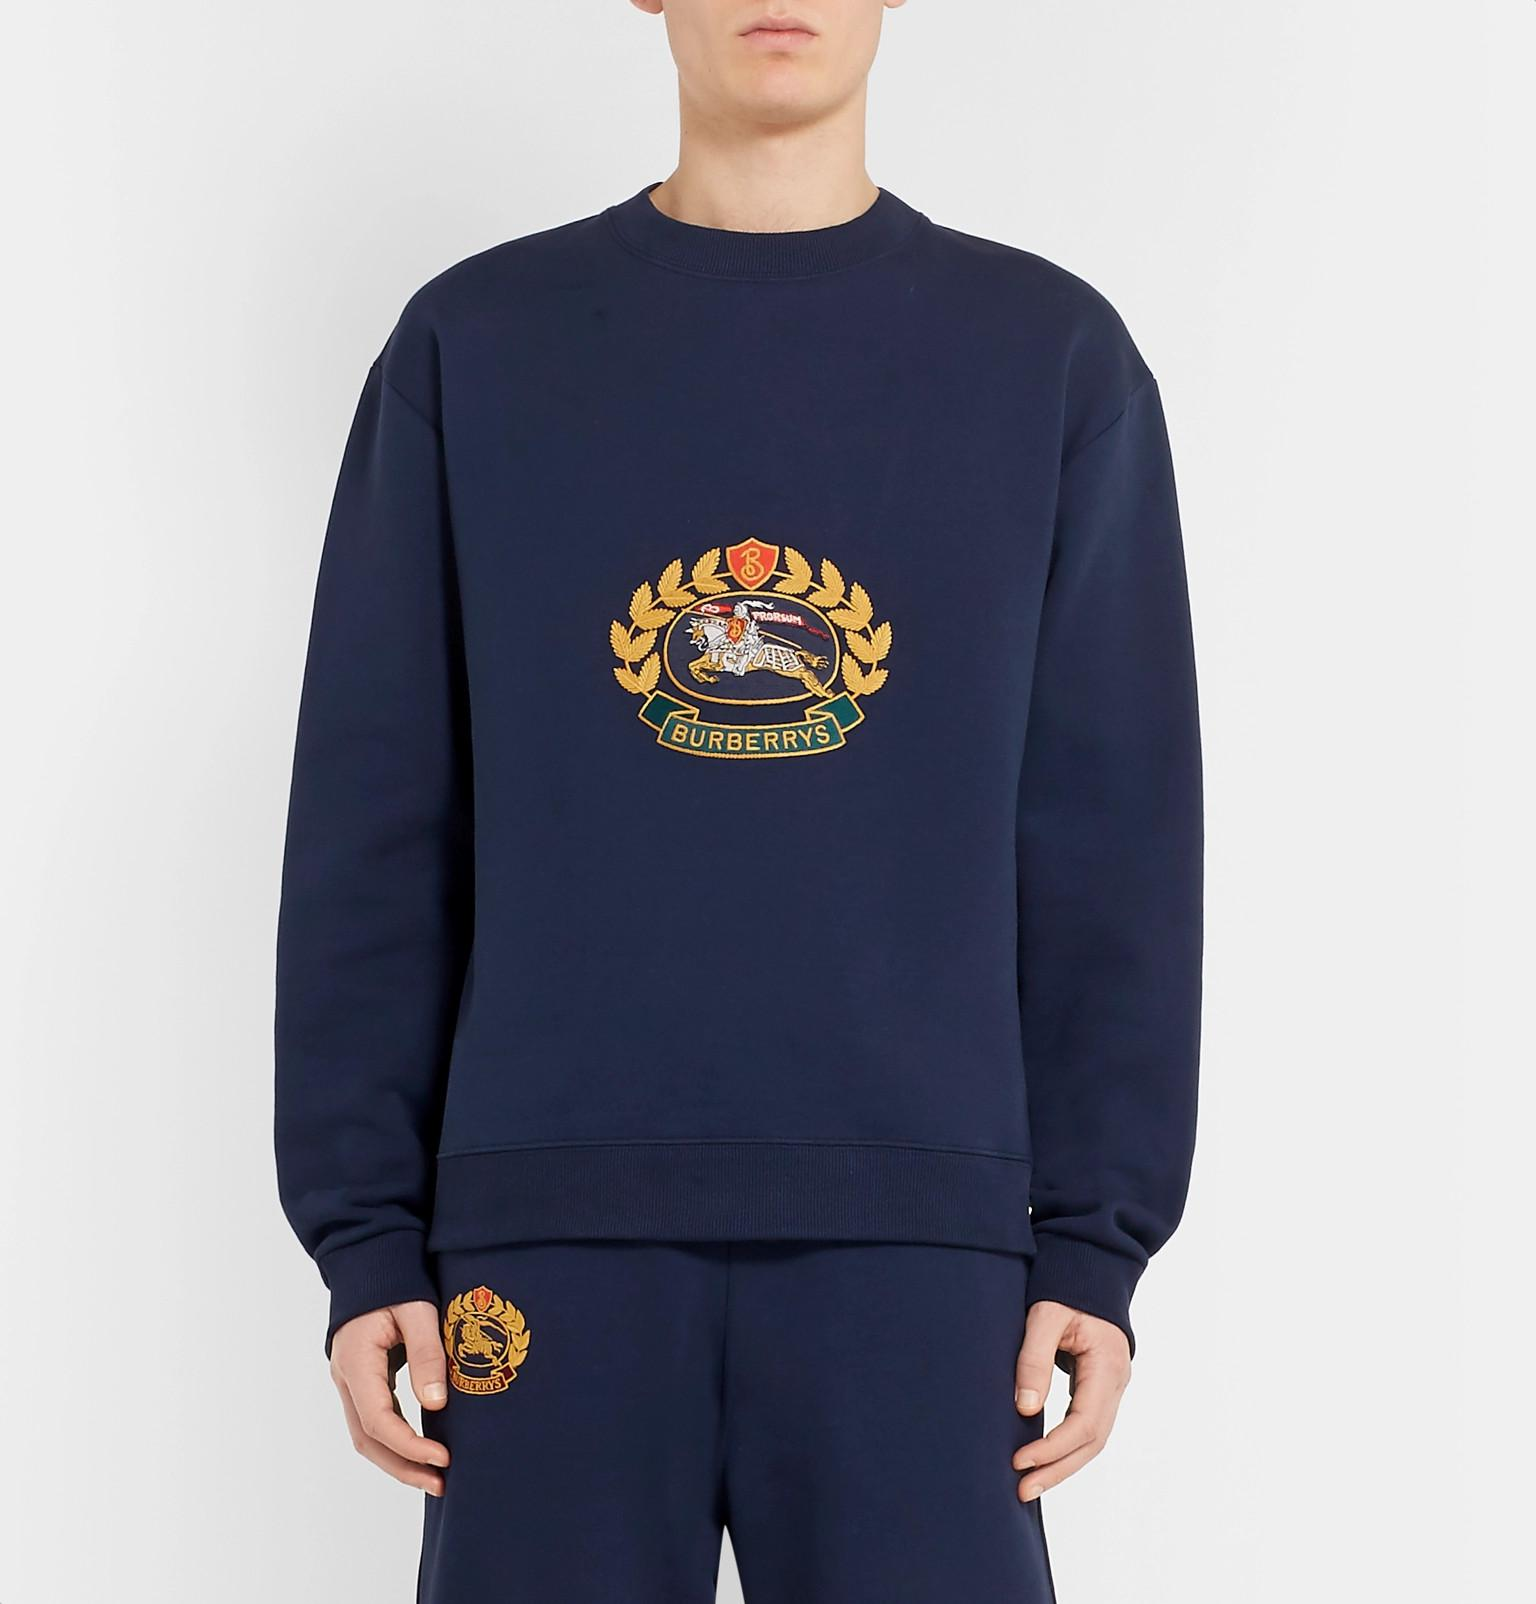 1ba0ed15e97e Burberry Pre-owned Navy Cotton Knitwear   Sweatshirts in Blue for ...